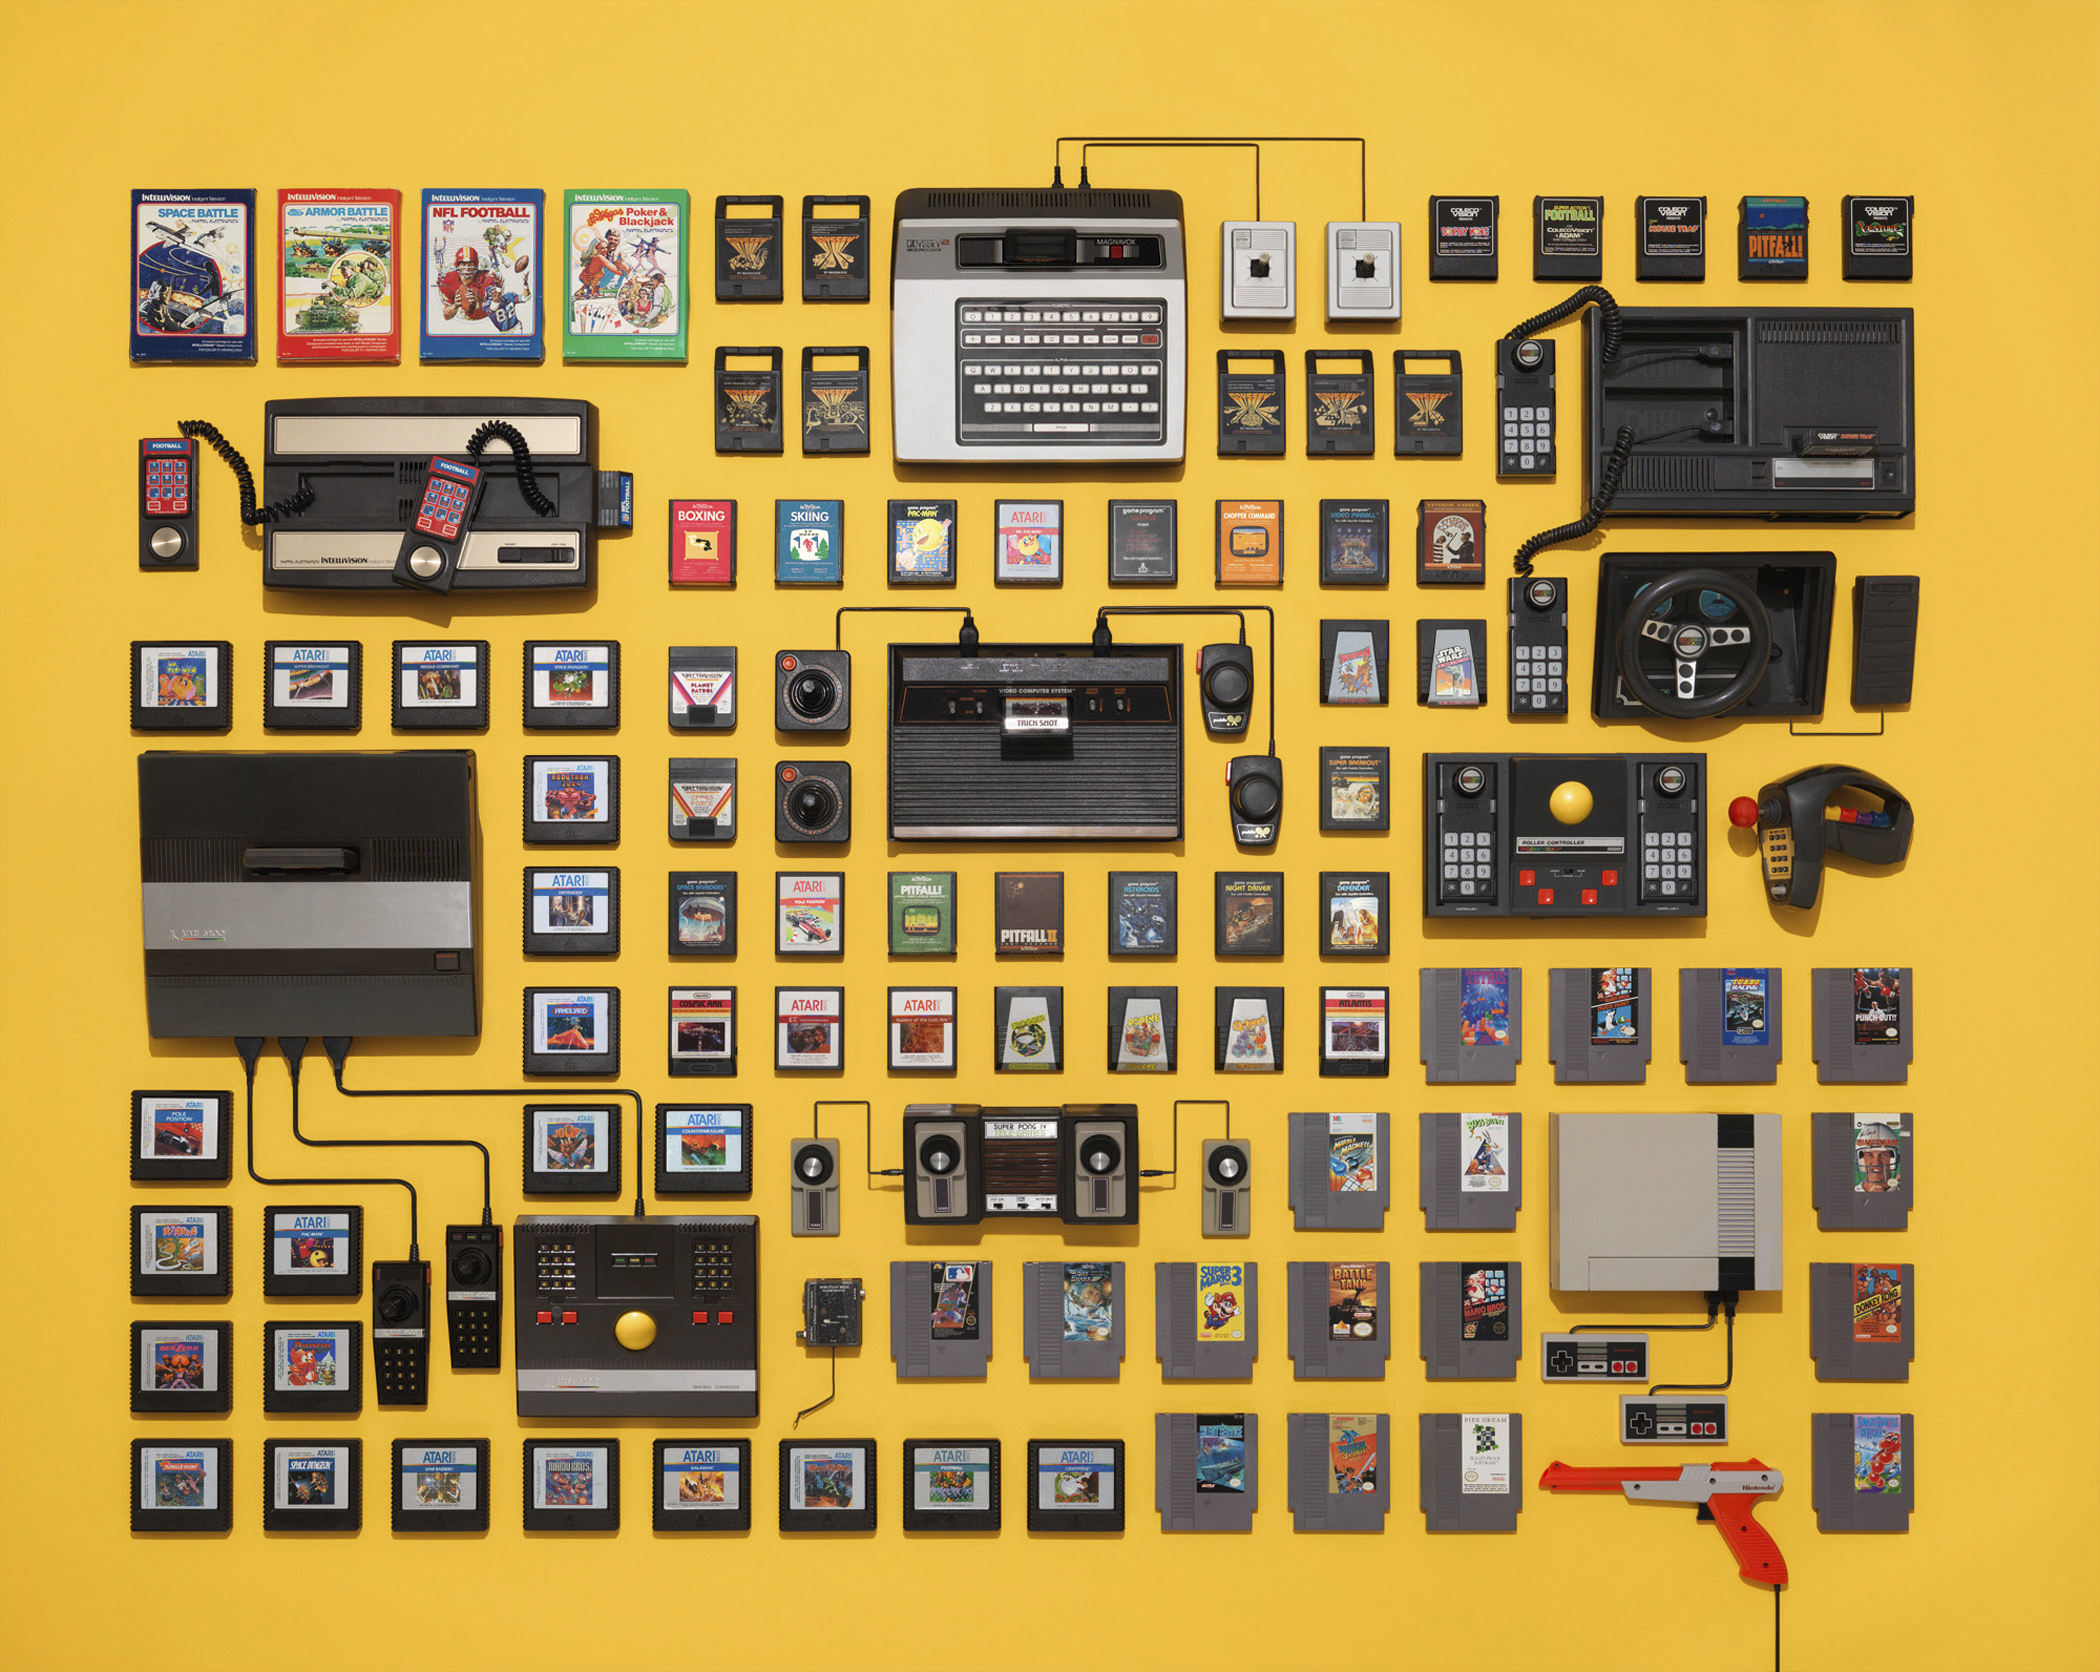 """8-Bit Videogame Collection, including the Nintendo NES.  List Price of 1985 Nintendo NES Control Deck: $199, per <a href=""""http://images.businessweek.com/ss/06/10/game_consoles/source/4.htm"""" title=""""BusinessWeek"""" target=""""_blank"""">BusinessWeek</a>.                                            <strong>Today's equivalent:</strong> Xbox 360 500GB Holiday Bundle. List Price $249.99, on <a href=""""http://www.xbox.com/en-US/xbox360/consoles"""" title=""""Xbox 360 Console"""" target=""""_blank"""">Xbox.com</a> OR <strong> PlayStation 4 Destiny Bundle.</strong> List Price $449, available on <a href=""""http://www.amazon.com/exec/obidos/ASIN/B00KVOVBGM/ref=nosim/6553221-rg1864-00-20?s=merchant"""" title=""""Amazon.com"""" target=""""_blank"""">Amazon.com</a>."""